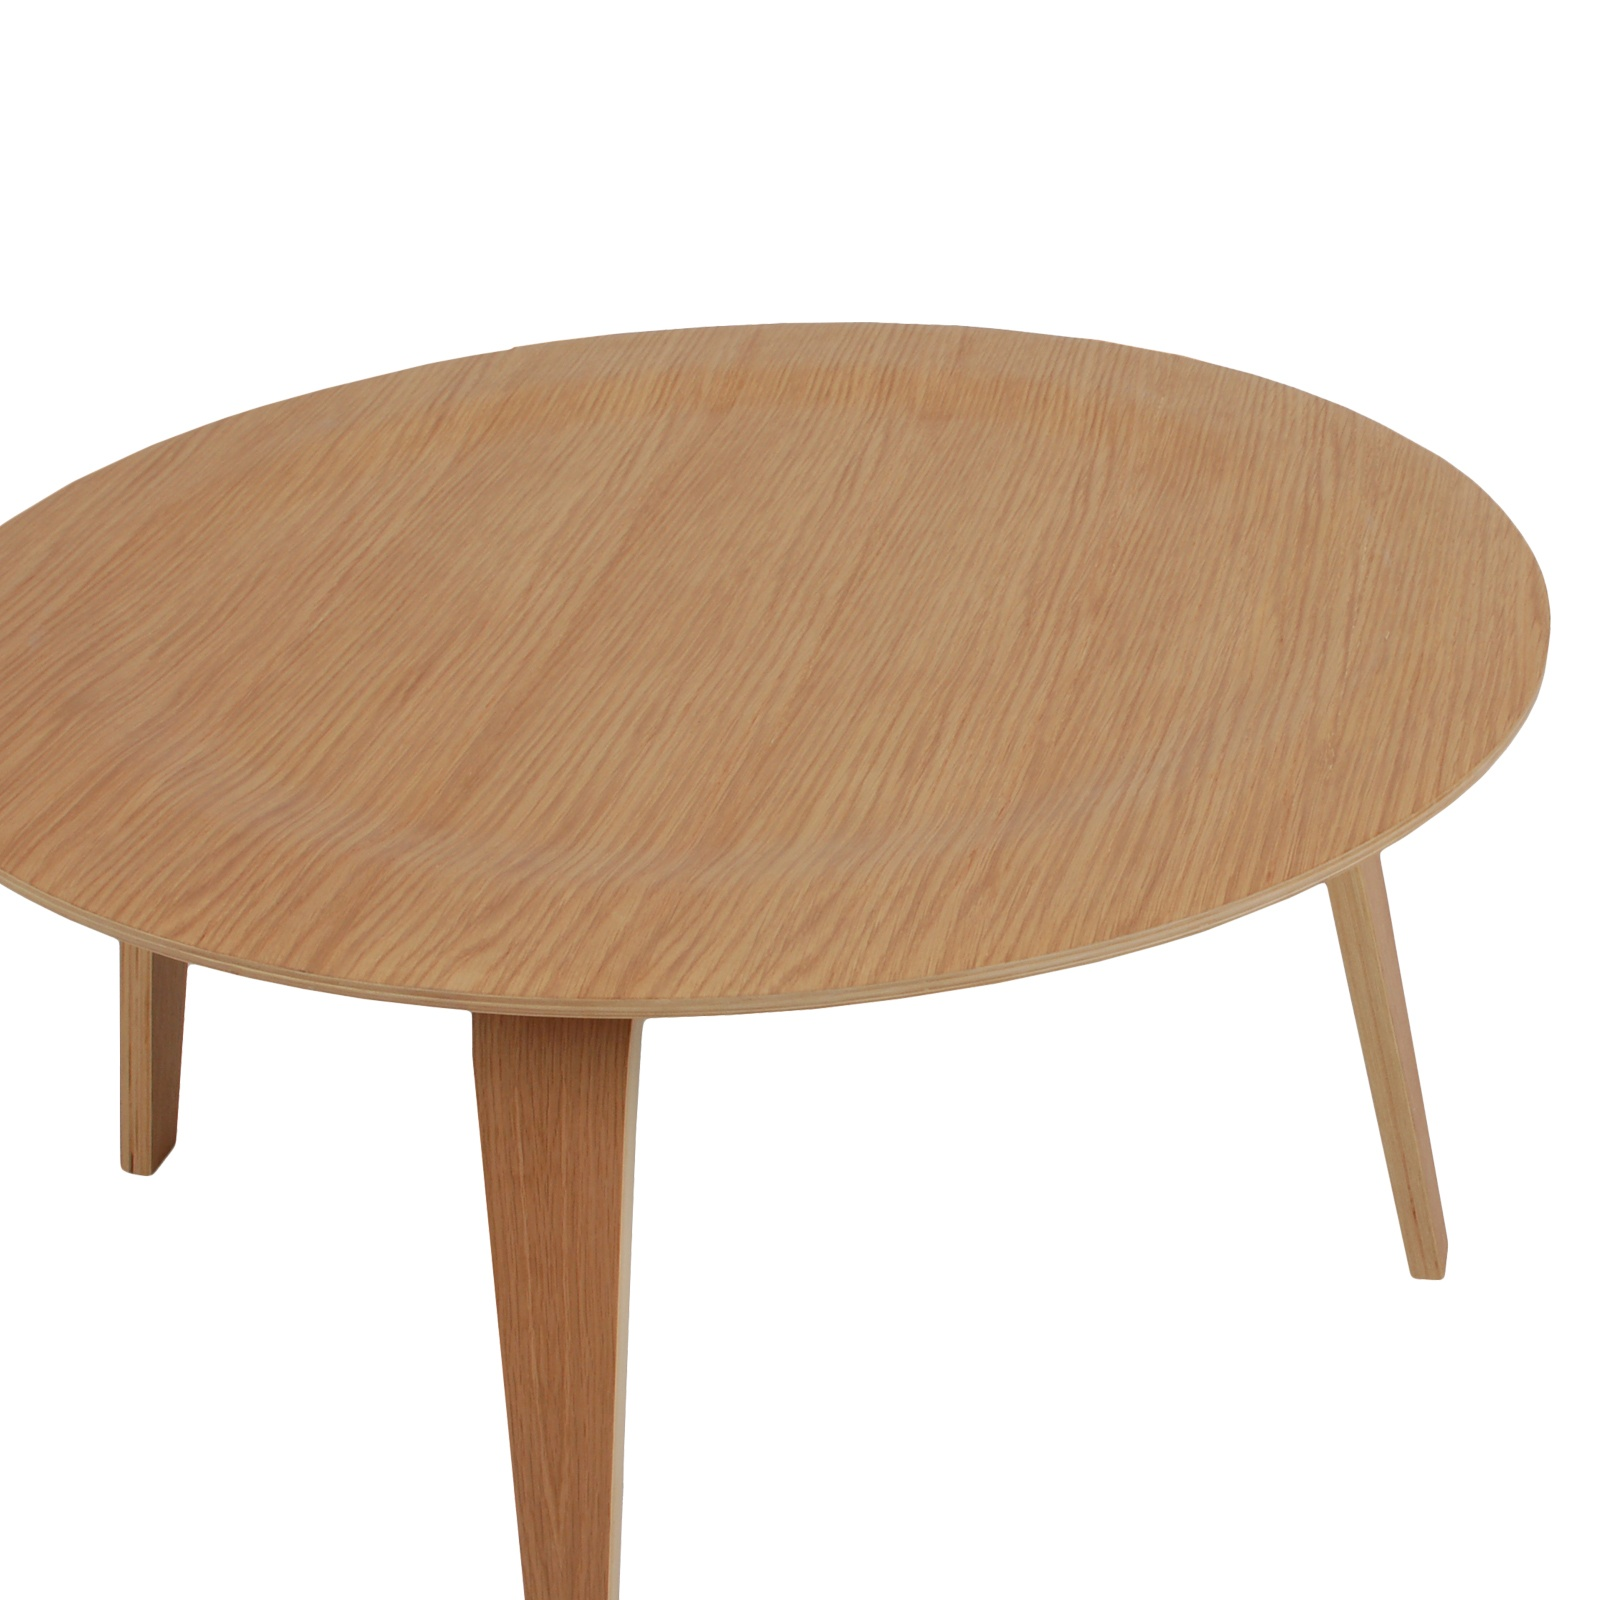 Eames Molded Plywood Table ...